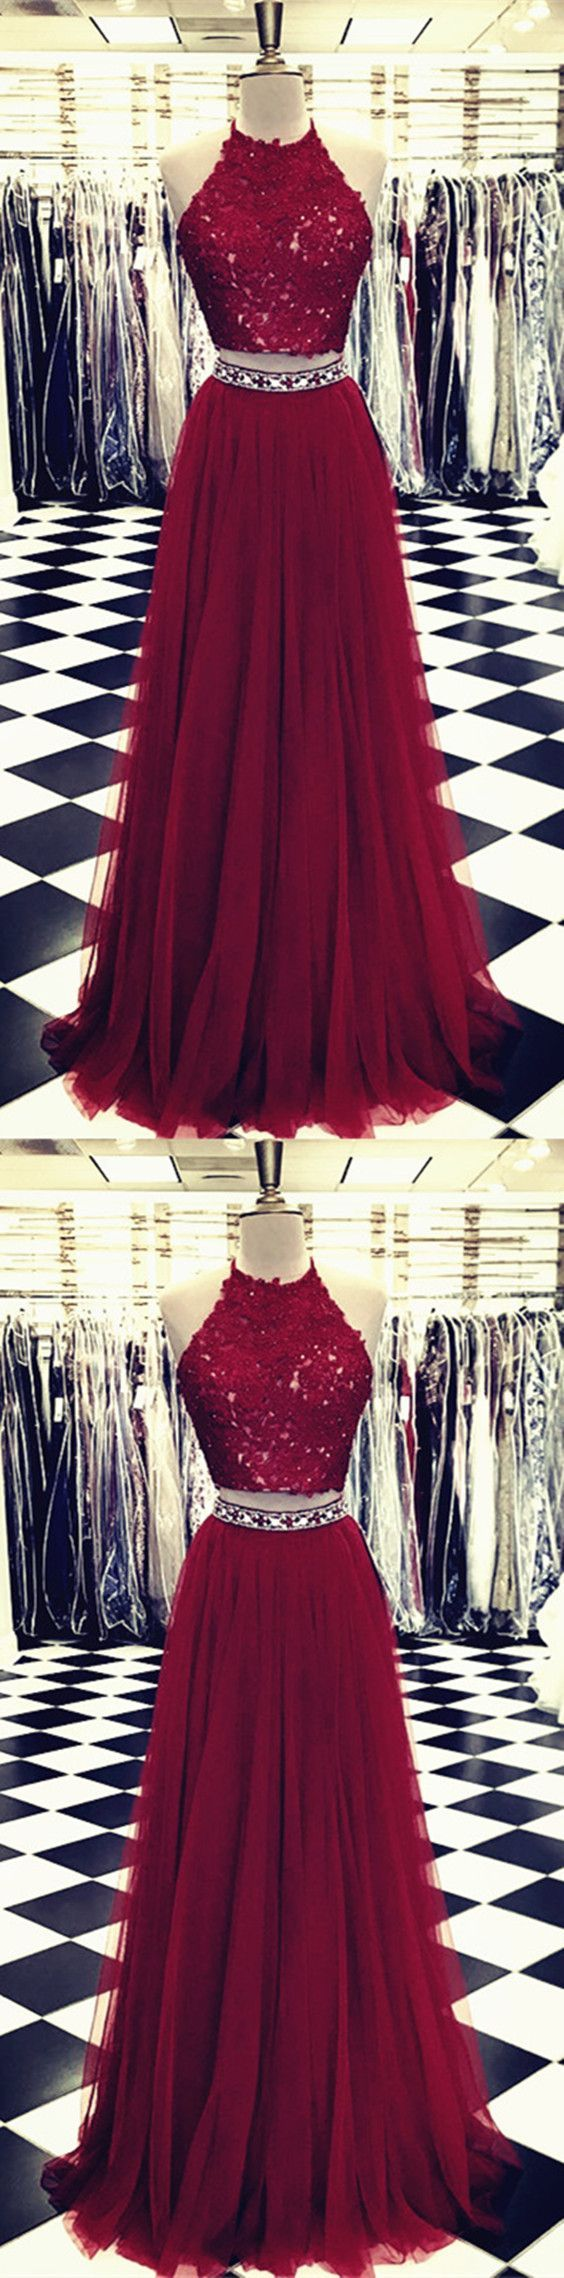 Burgundy lace crop top tulle prom dresses two piece evening gowns